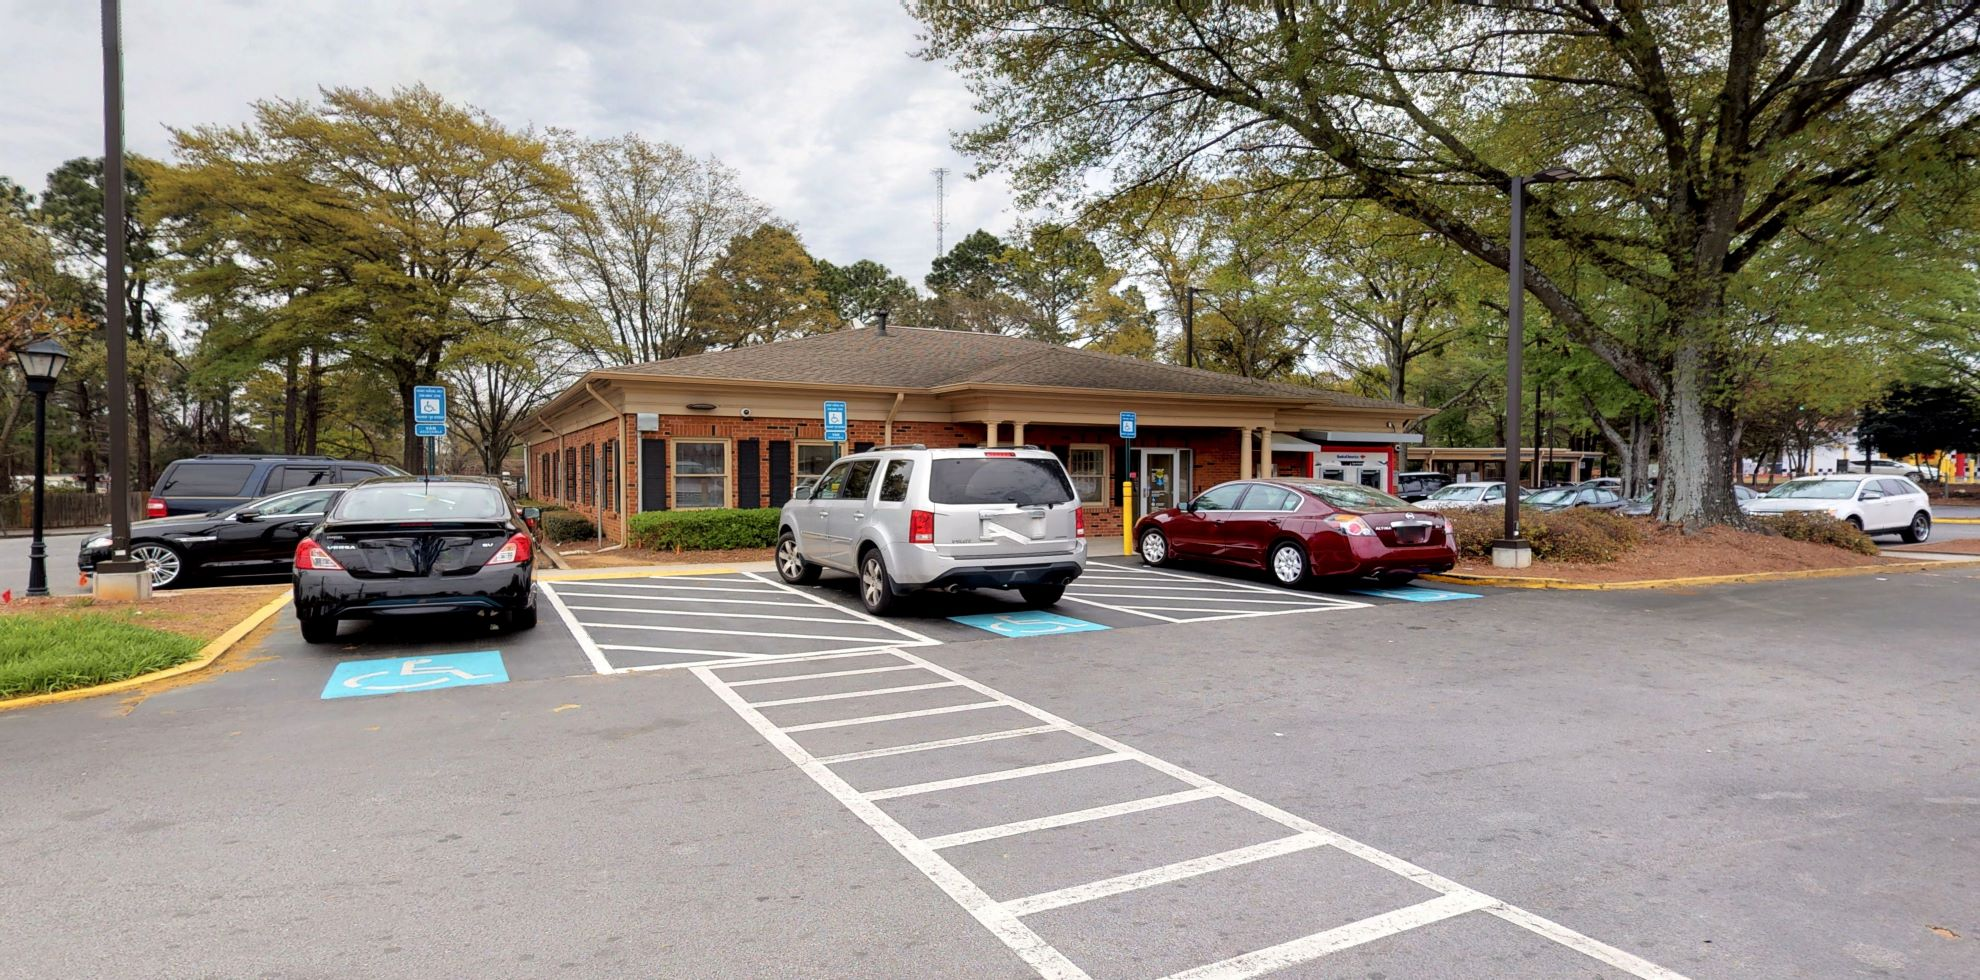 Bank of America financial center with drive-thru ATM   2850 Candler Rd, Decatur, GA 30034